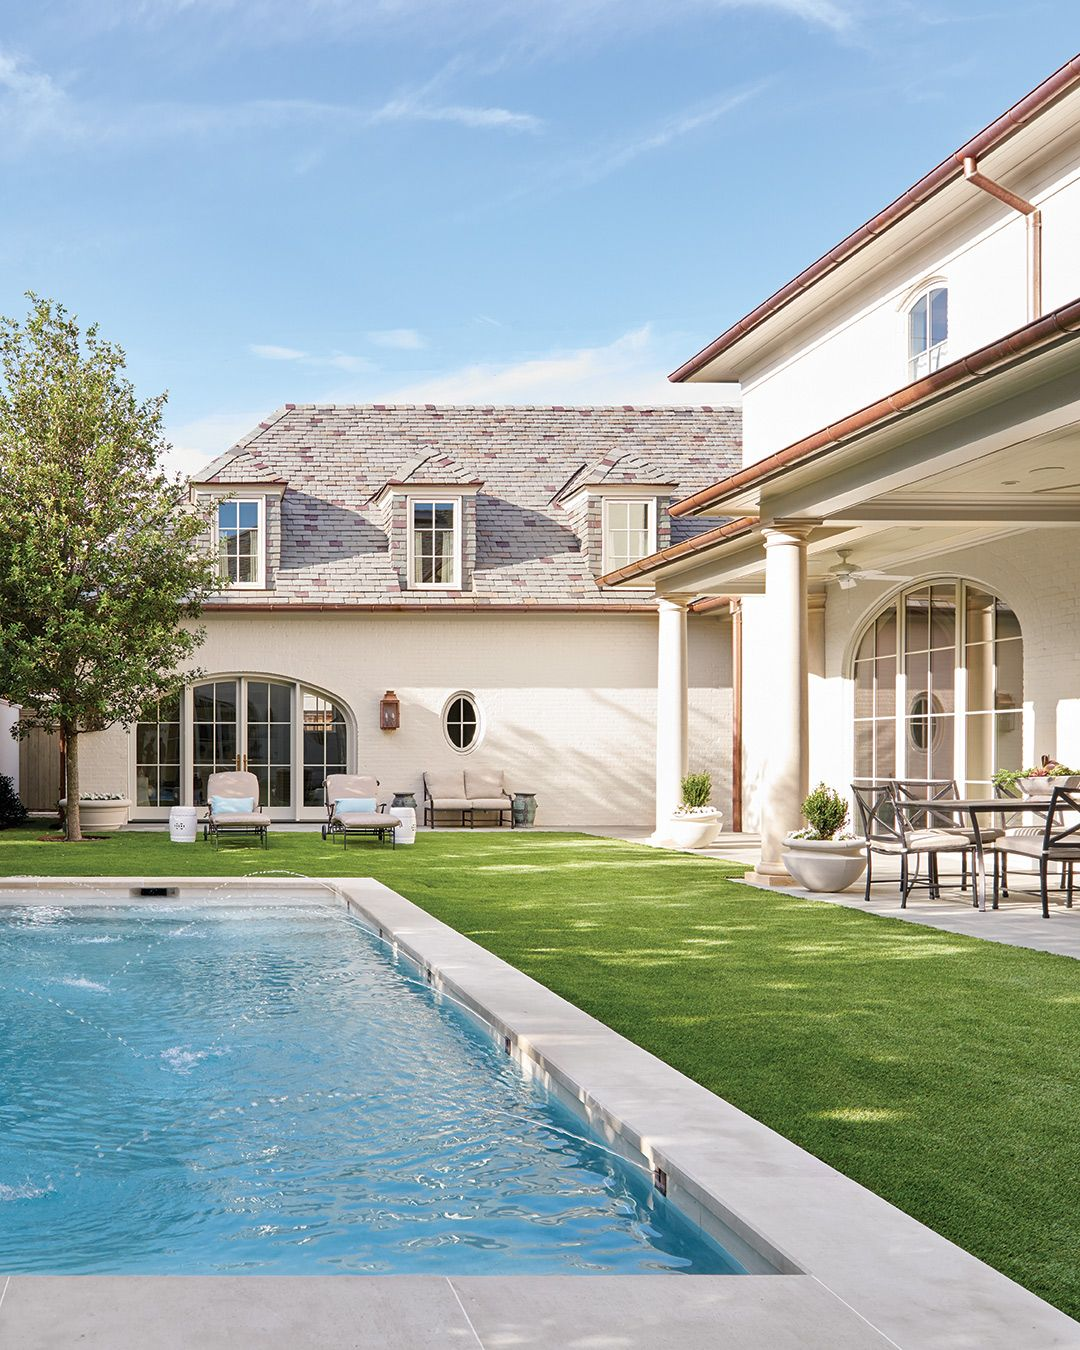 10 Lounge-Worthy Pools | House, home magazine, Outdoor ... on Southern Pools And Outdoor Living  id=71428